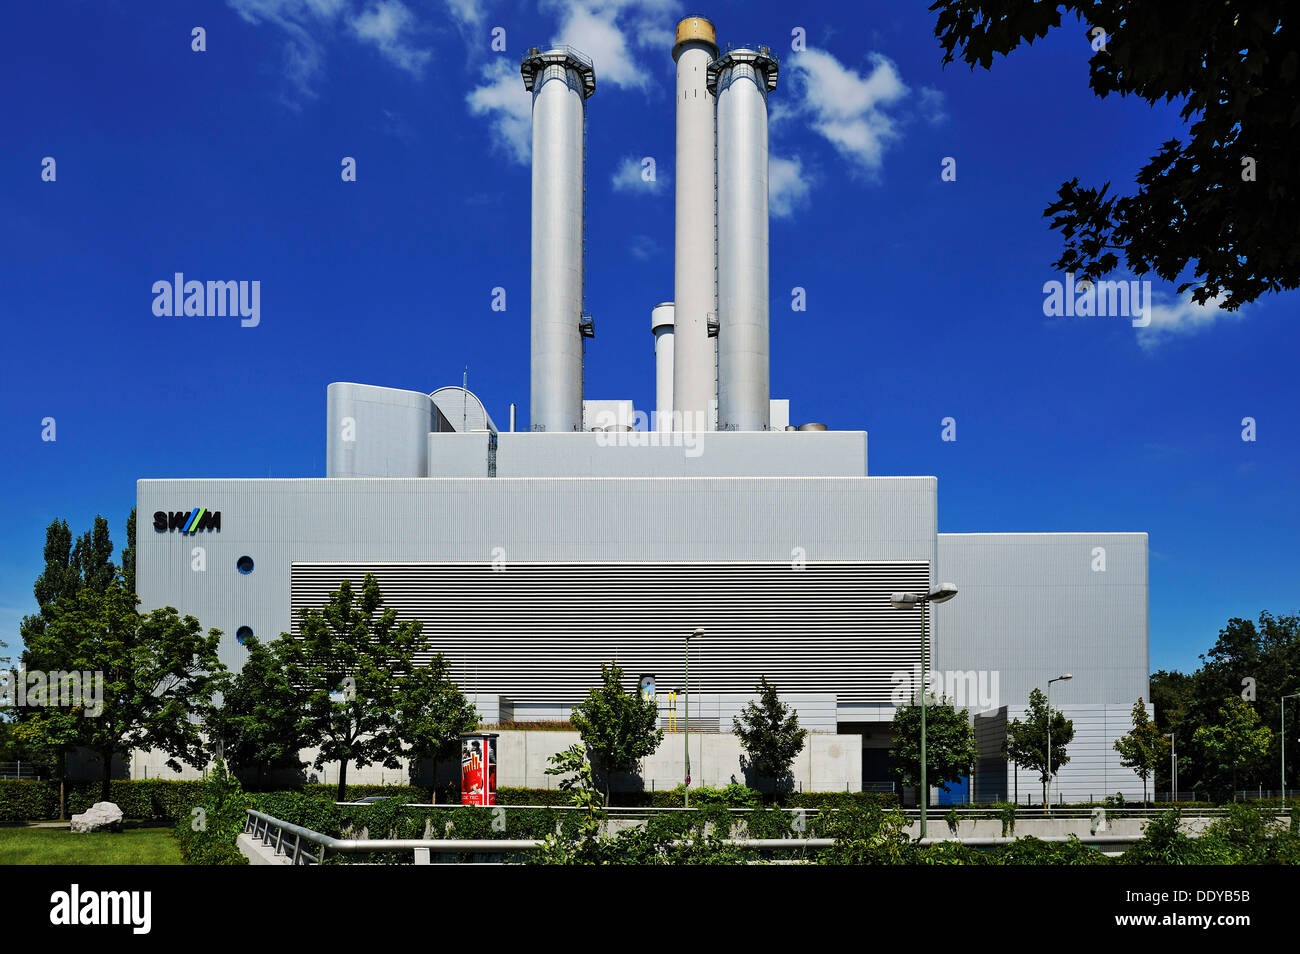 Co-generation power plant 'Sued', combined heat and power plant operated by Stadtwerke Muenchen, Sendling district, Munich - Stock Image